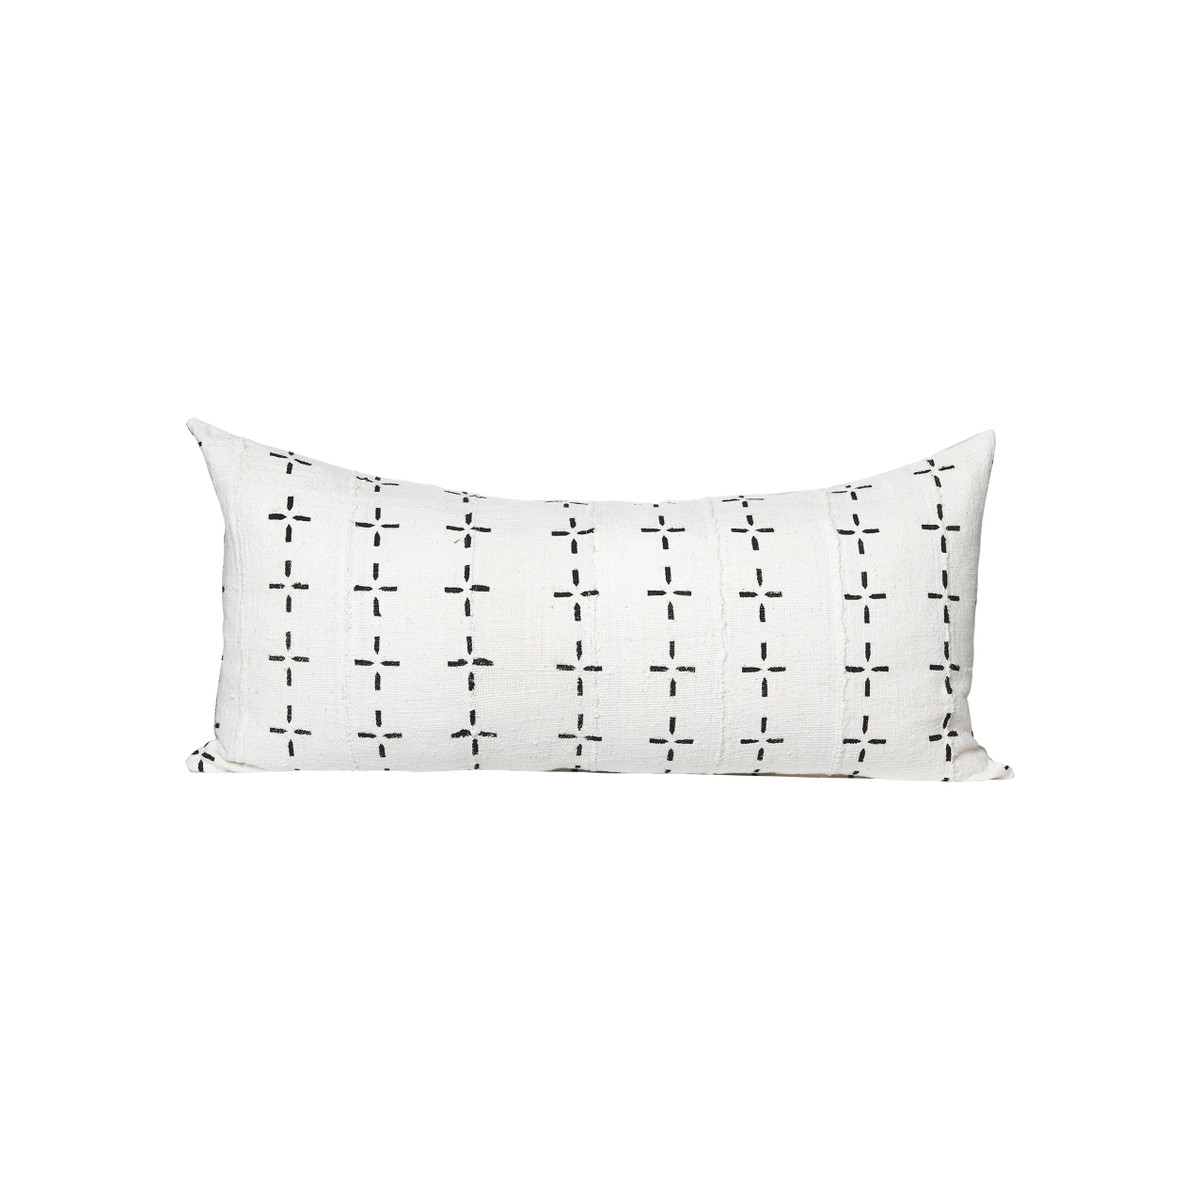 Flint White and Black Mud Cloth Lumbar Pillow - Front